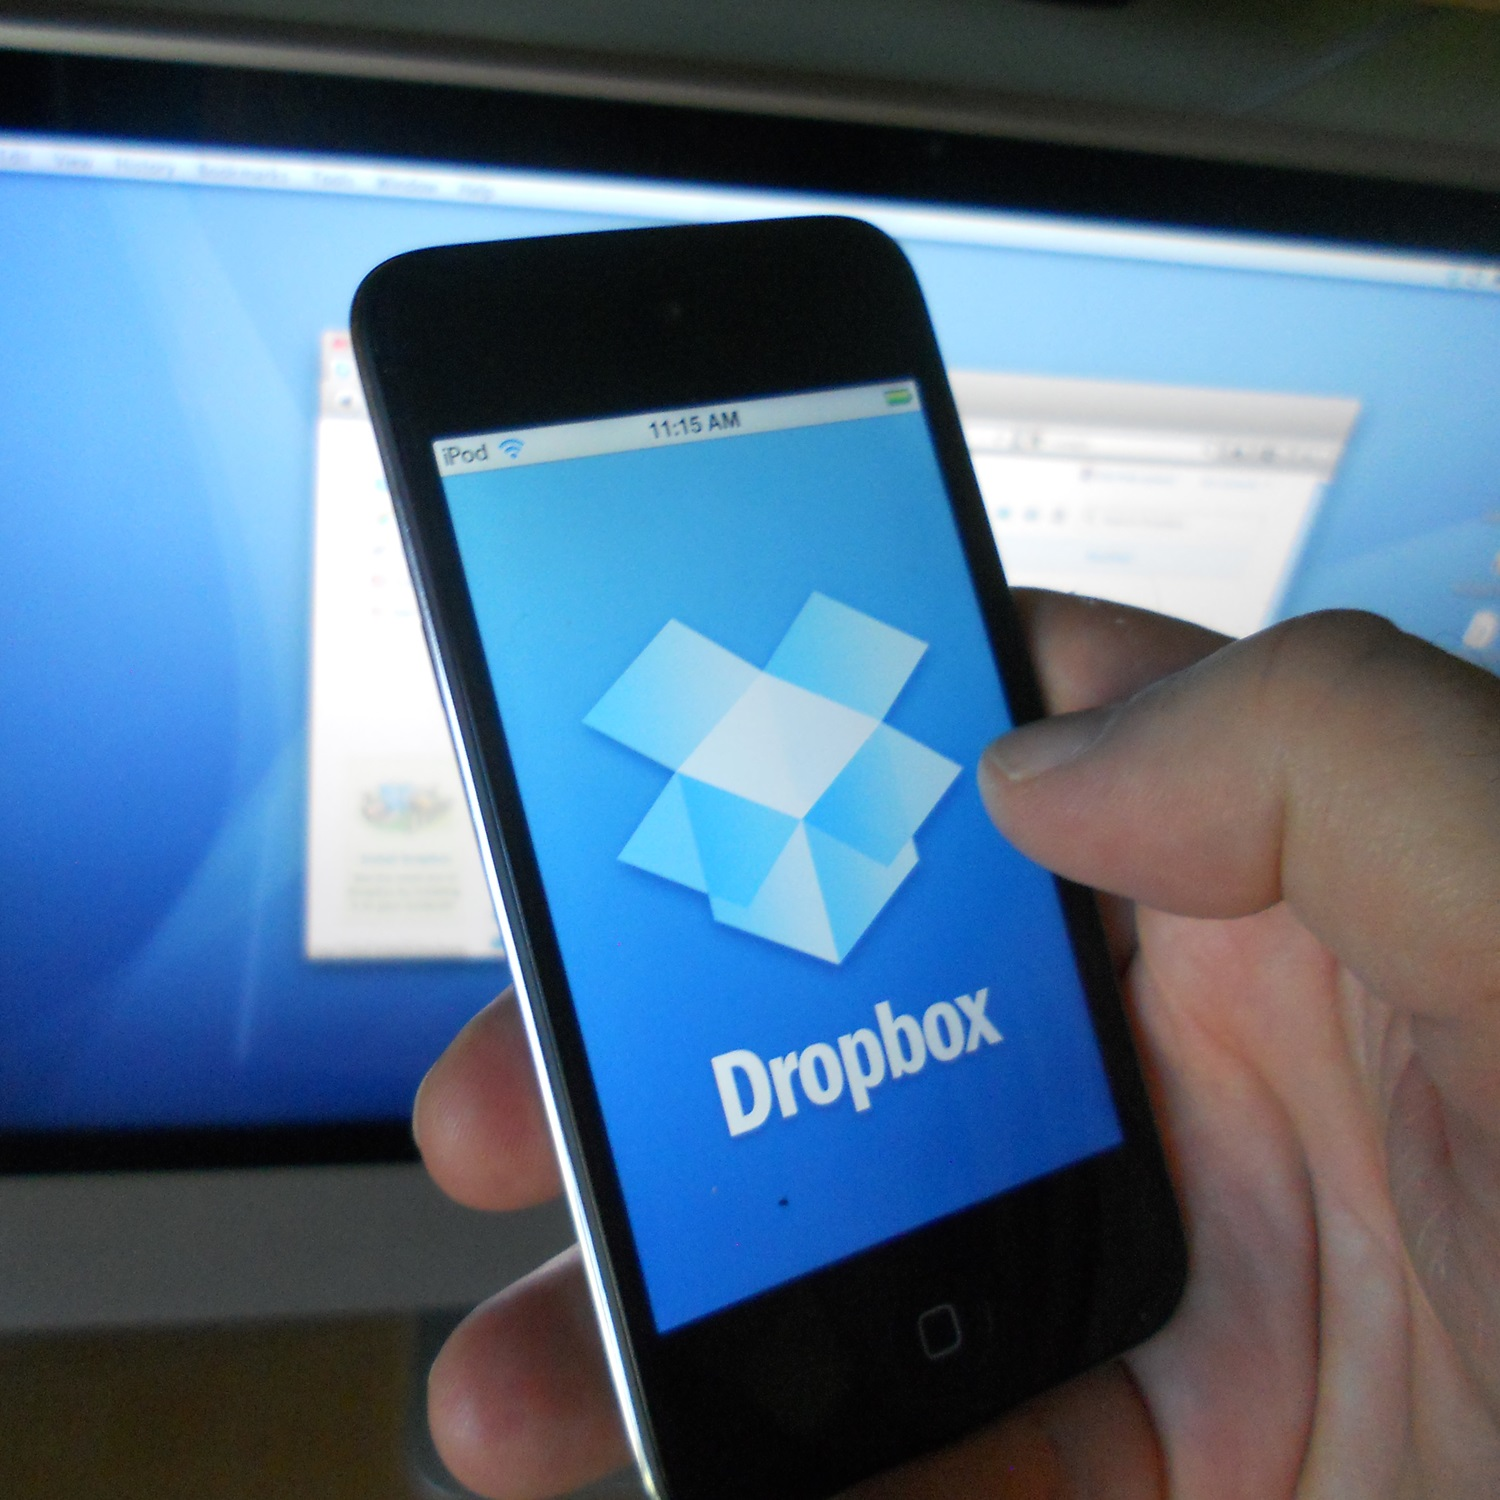 Dropbox Acquires Document Collaboration Service Hackpad